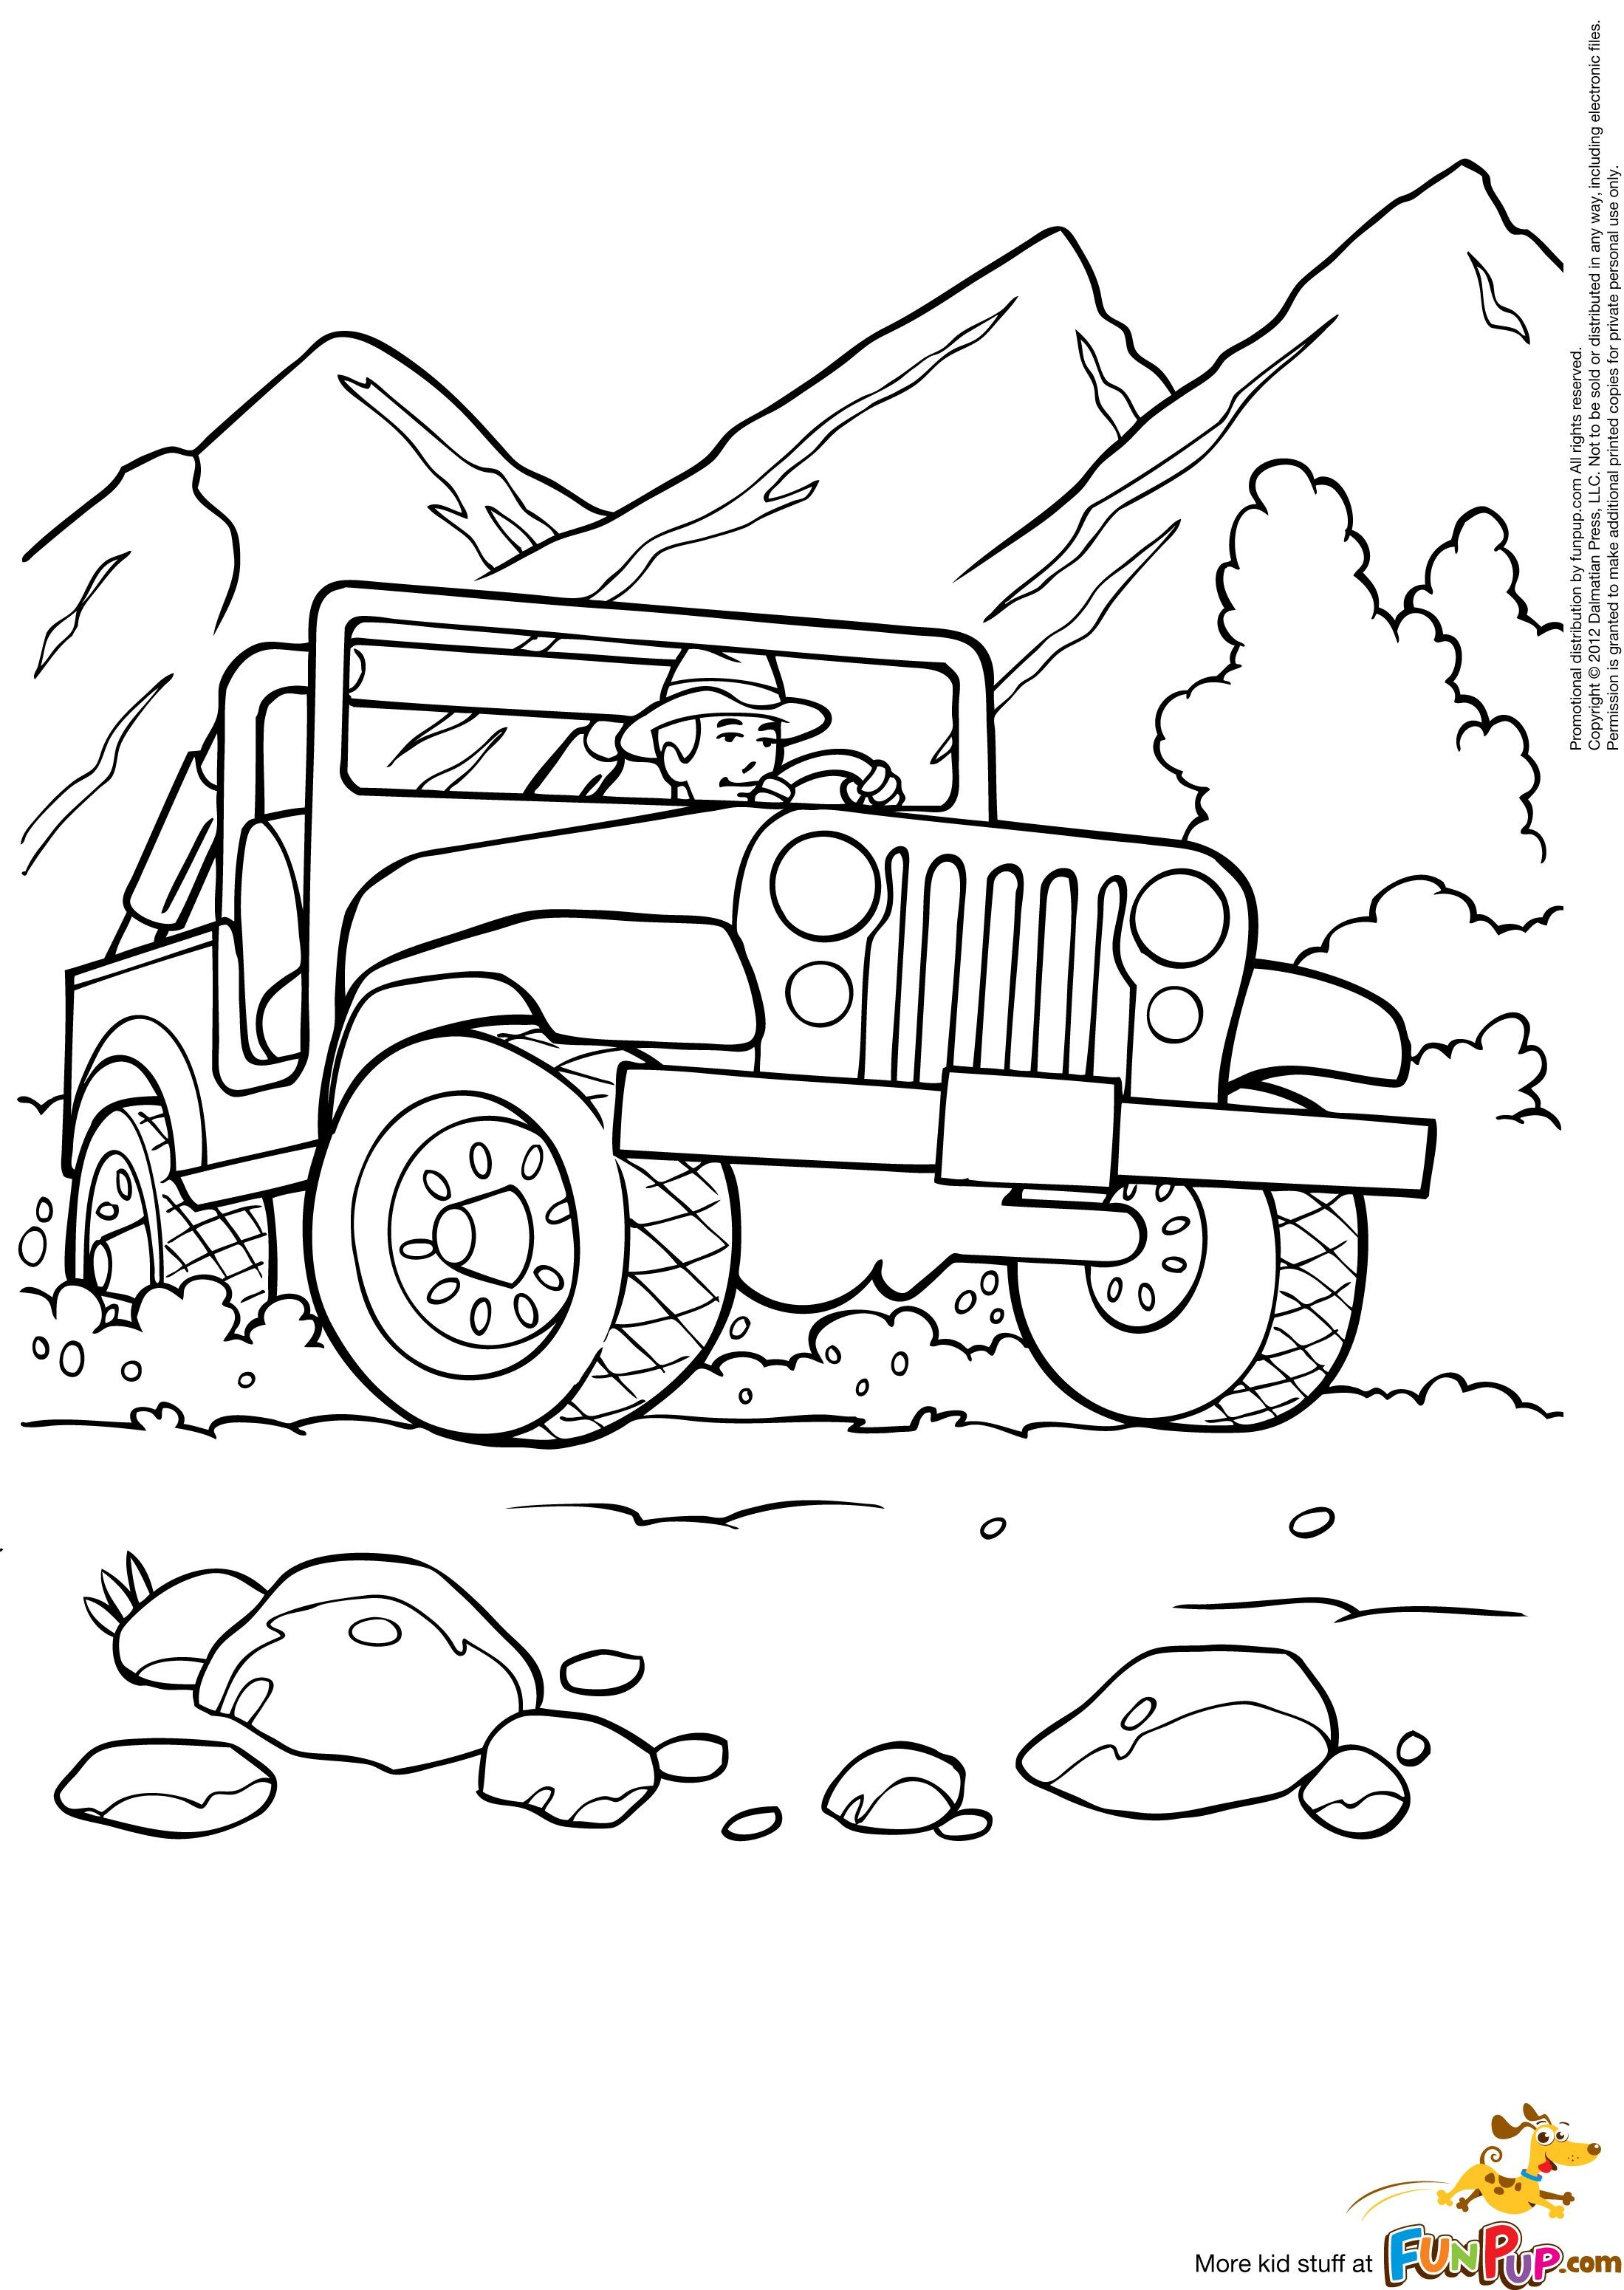 Pin By Michelle Duffy On Jeep Beach Kids Activities